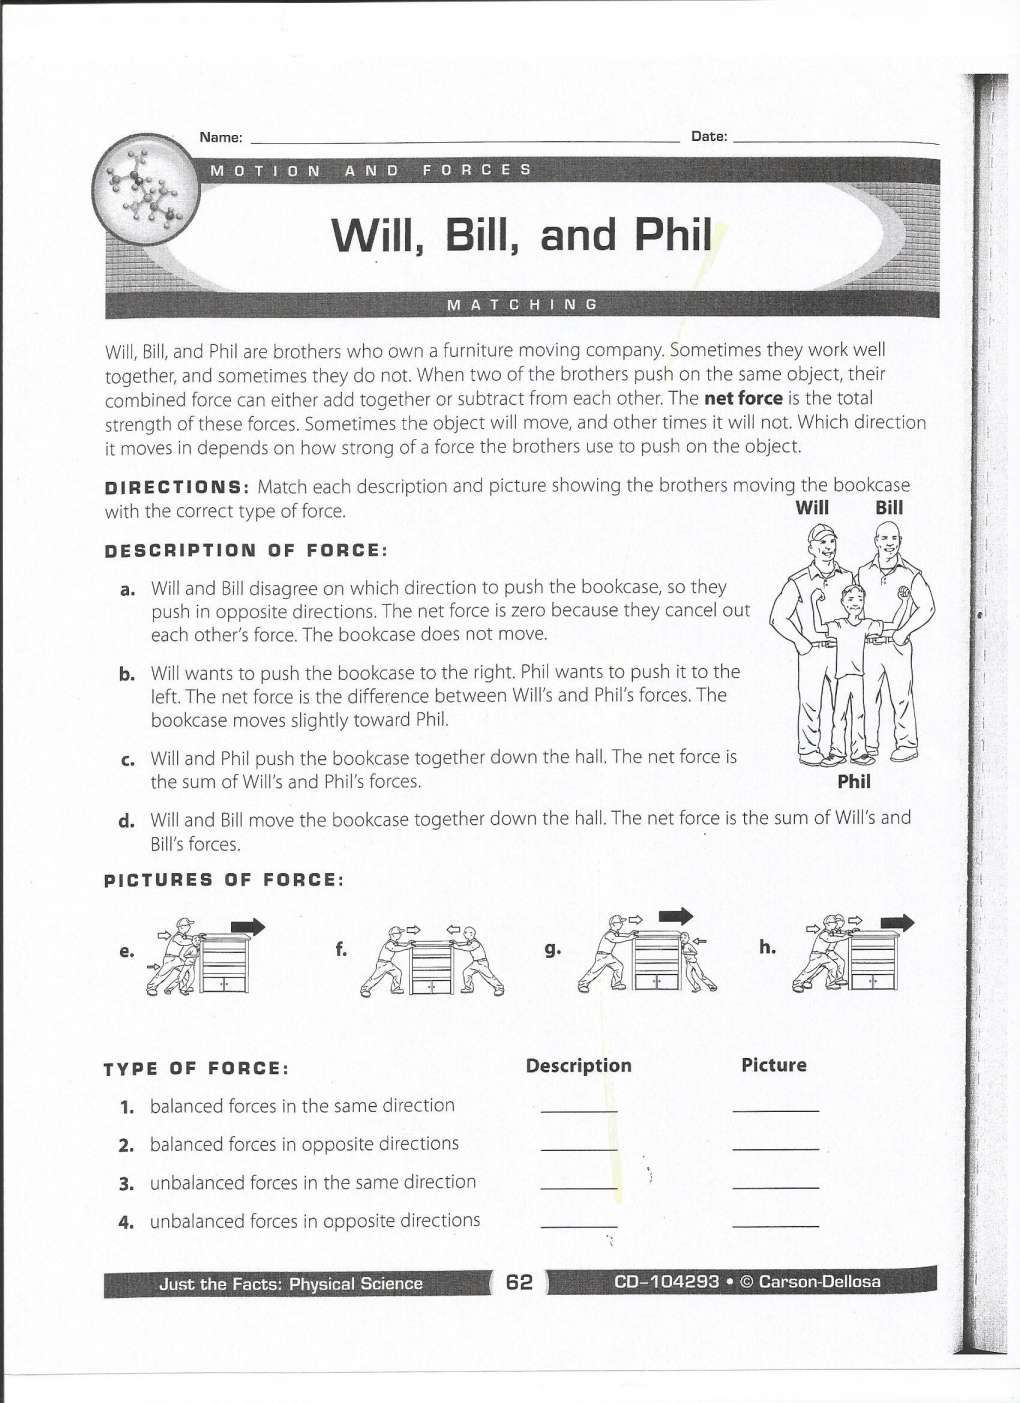 17 Force And Motion Worksheets 3rd Grade In 2020 Force And Motion Scientific Method Worksheet Printable Worksheets